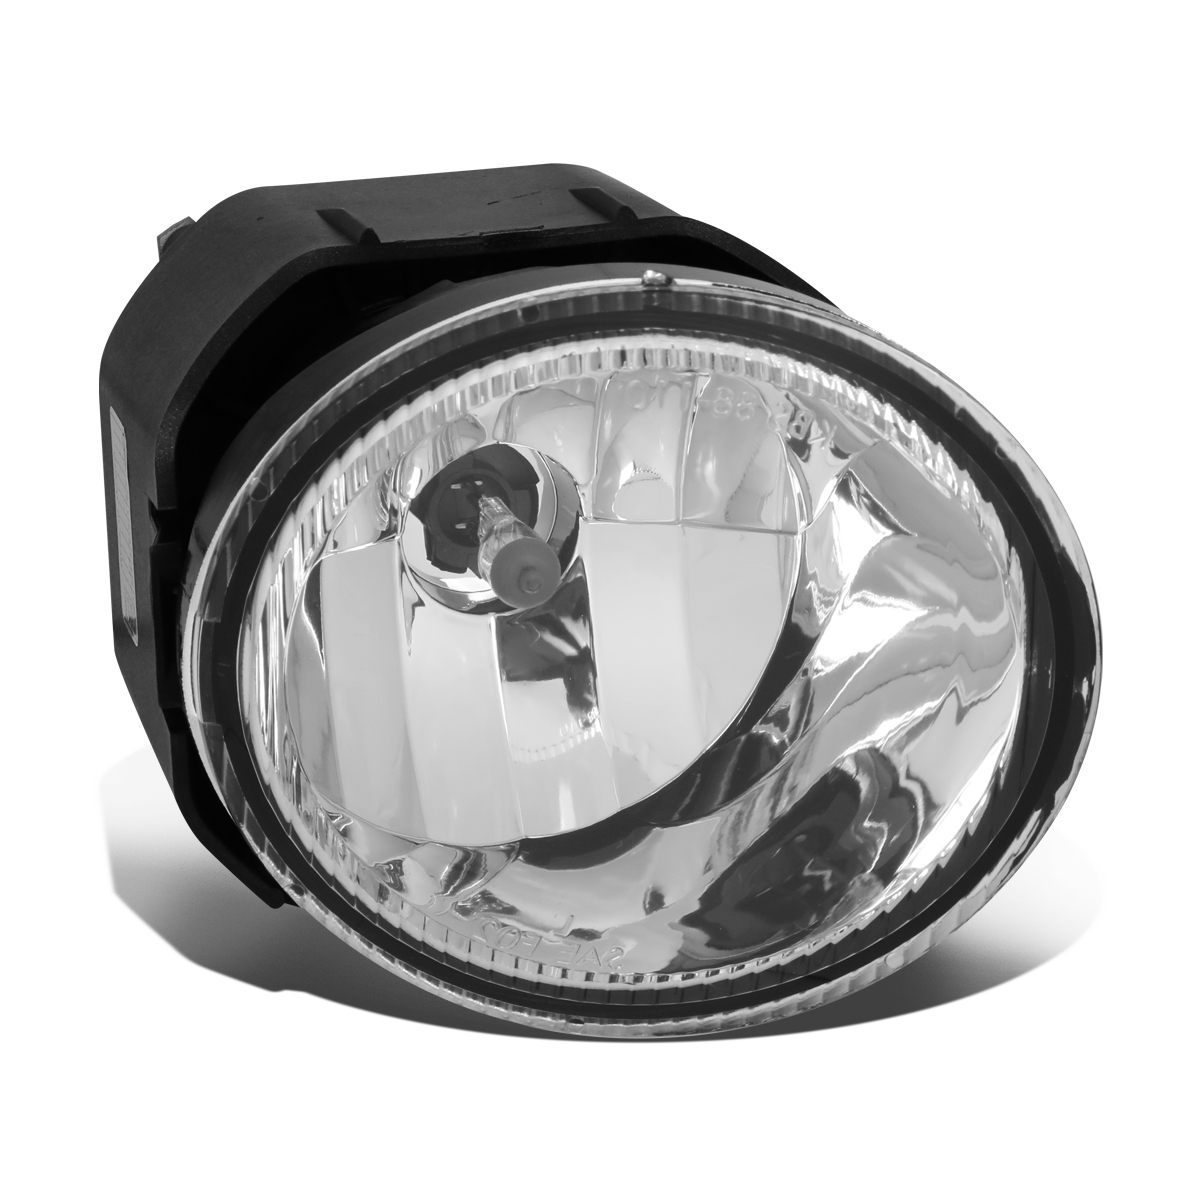 For 02-04 Nissan Frontier/Xterra Front Bumper Fog Light/Lamp Factory Style Right Side 03